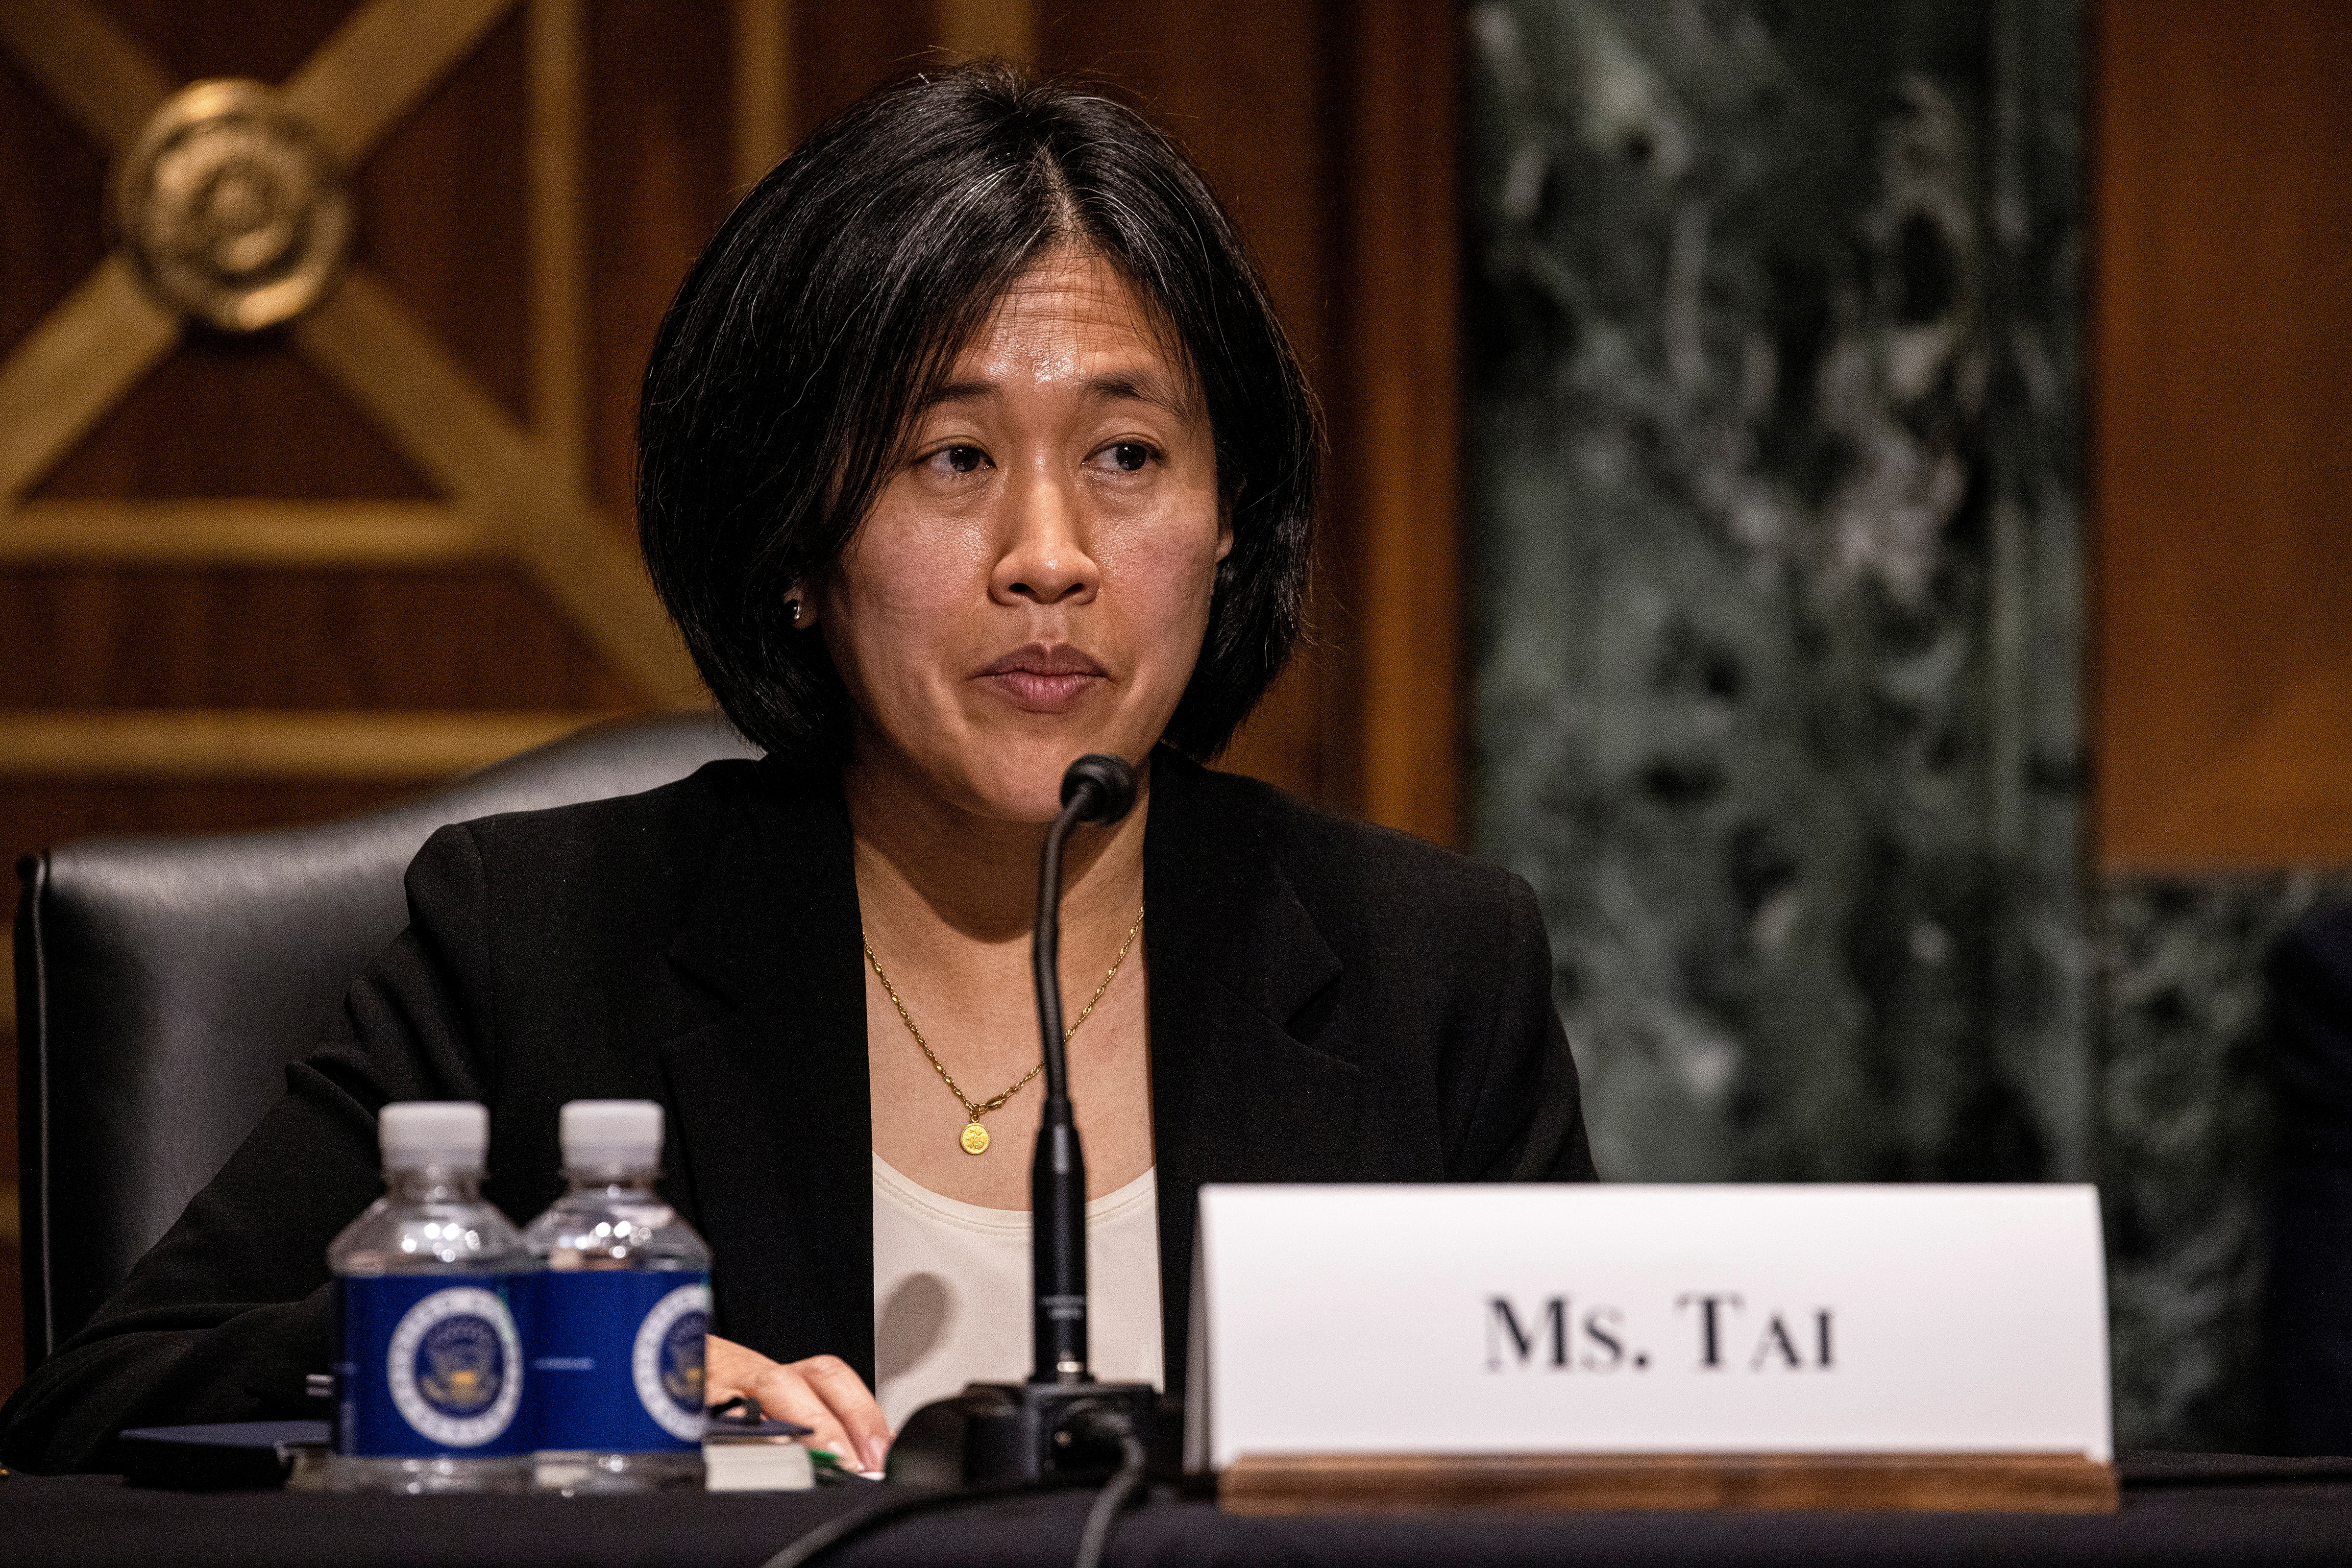 File photo: Katherine Tai, nominee for US Trade Representative, speaks at the Senate Finance Committee hearing at the US Capitol in Washington, DC, U.S. February 25, 2021. REUTERS/Tasos Katopodis